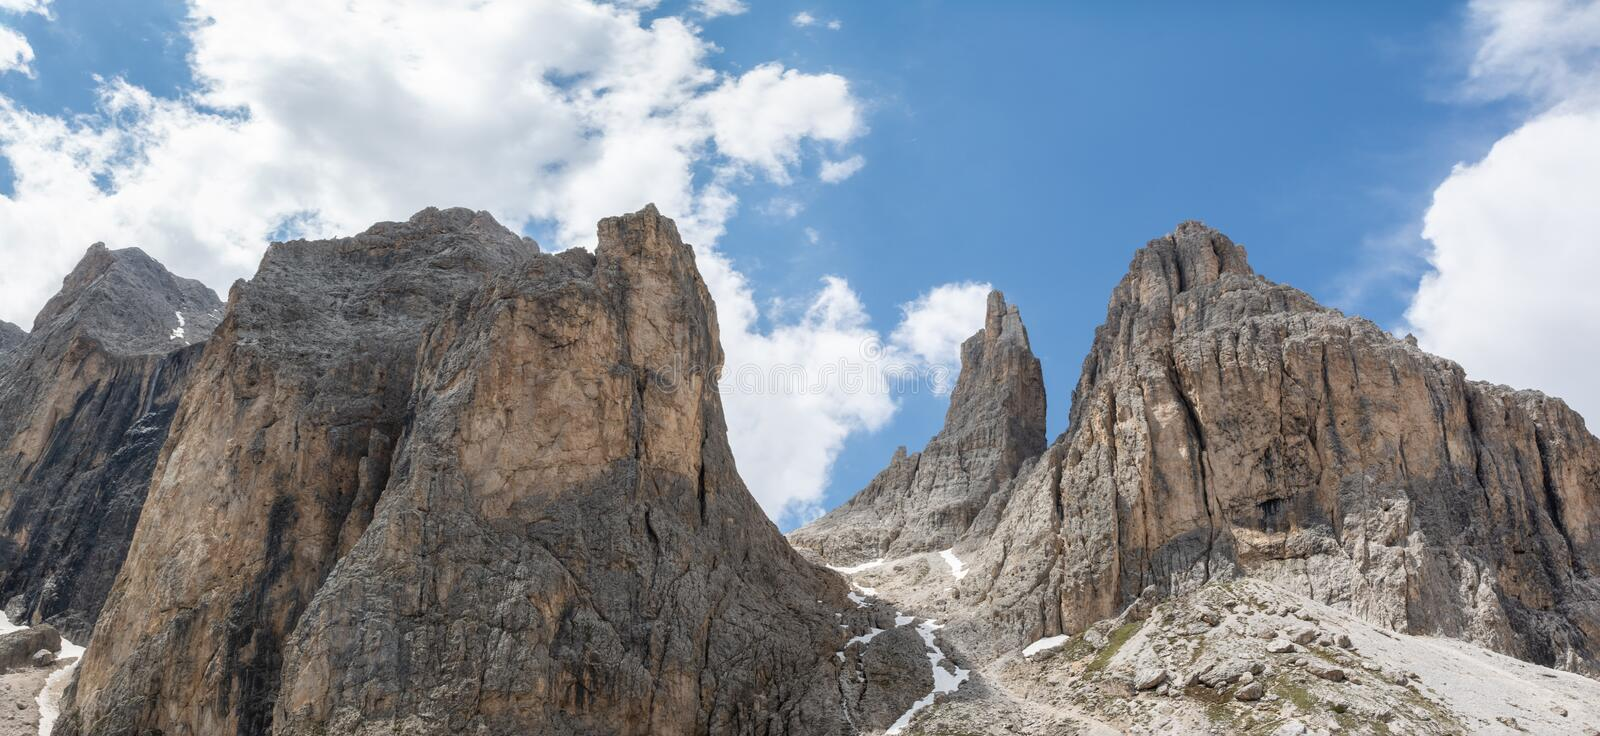 Panoramic view of Catinaccio mountain and Vajolet Towers. Dolomites, Italy royalty free stock photography